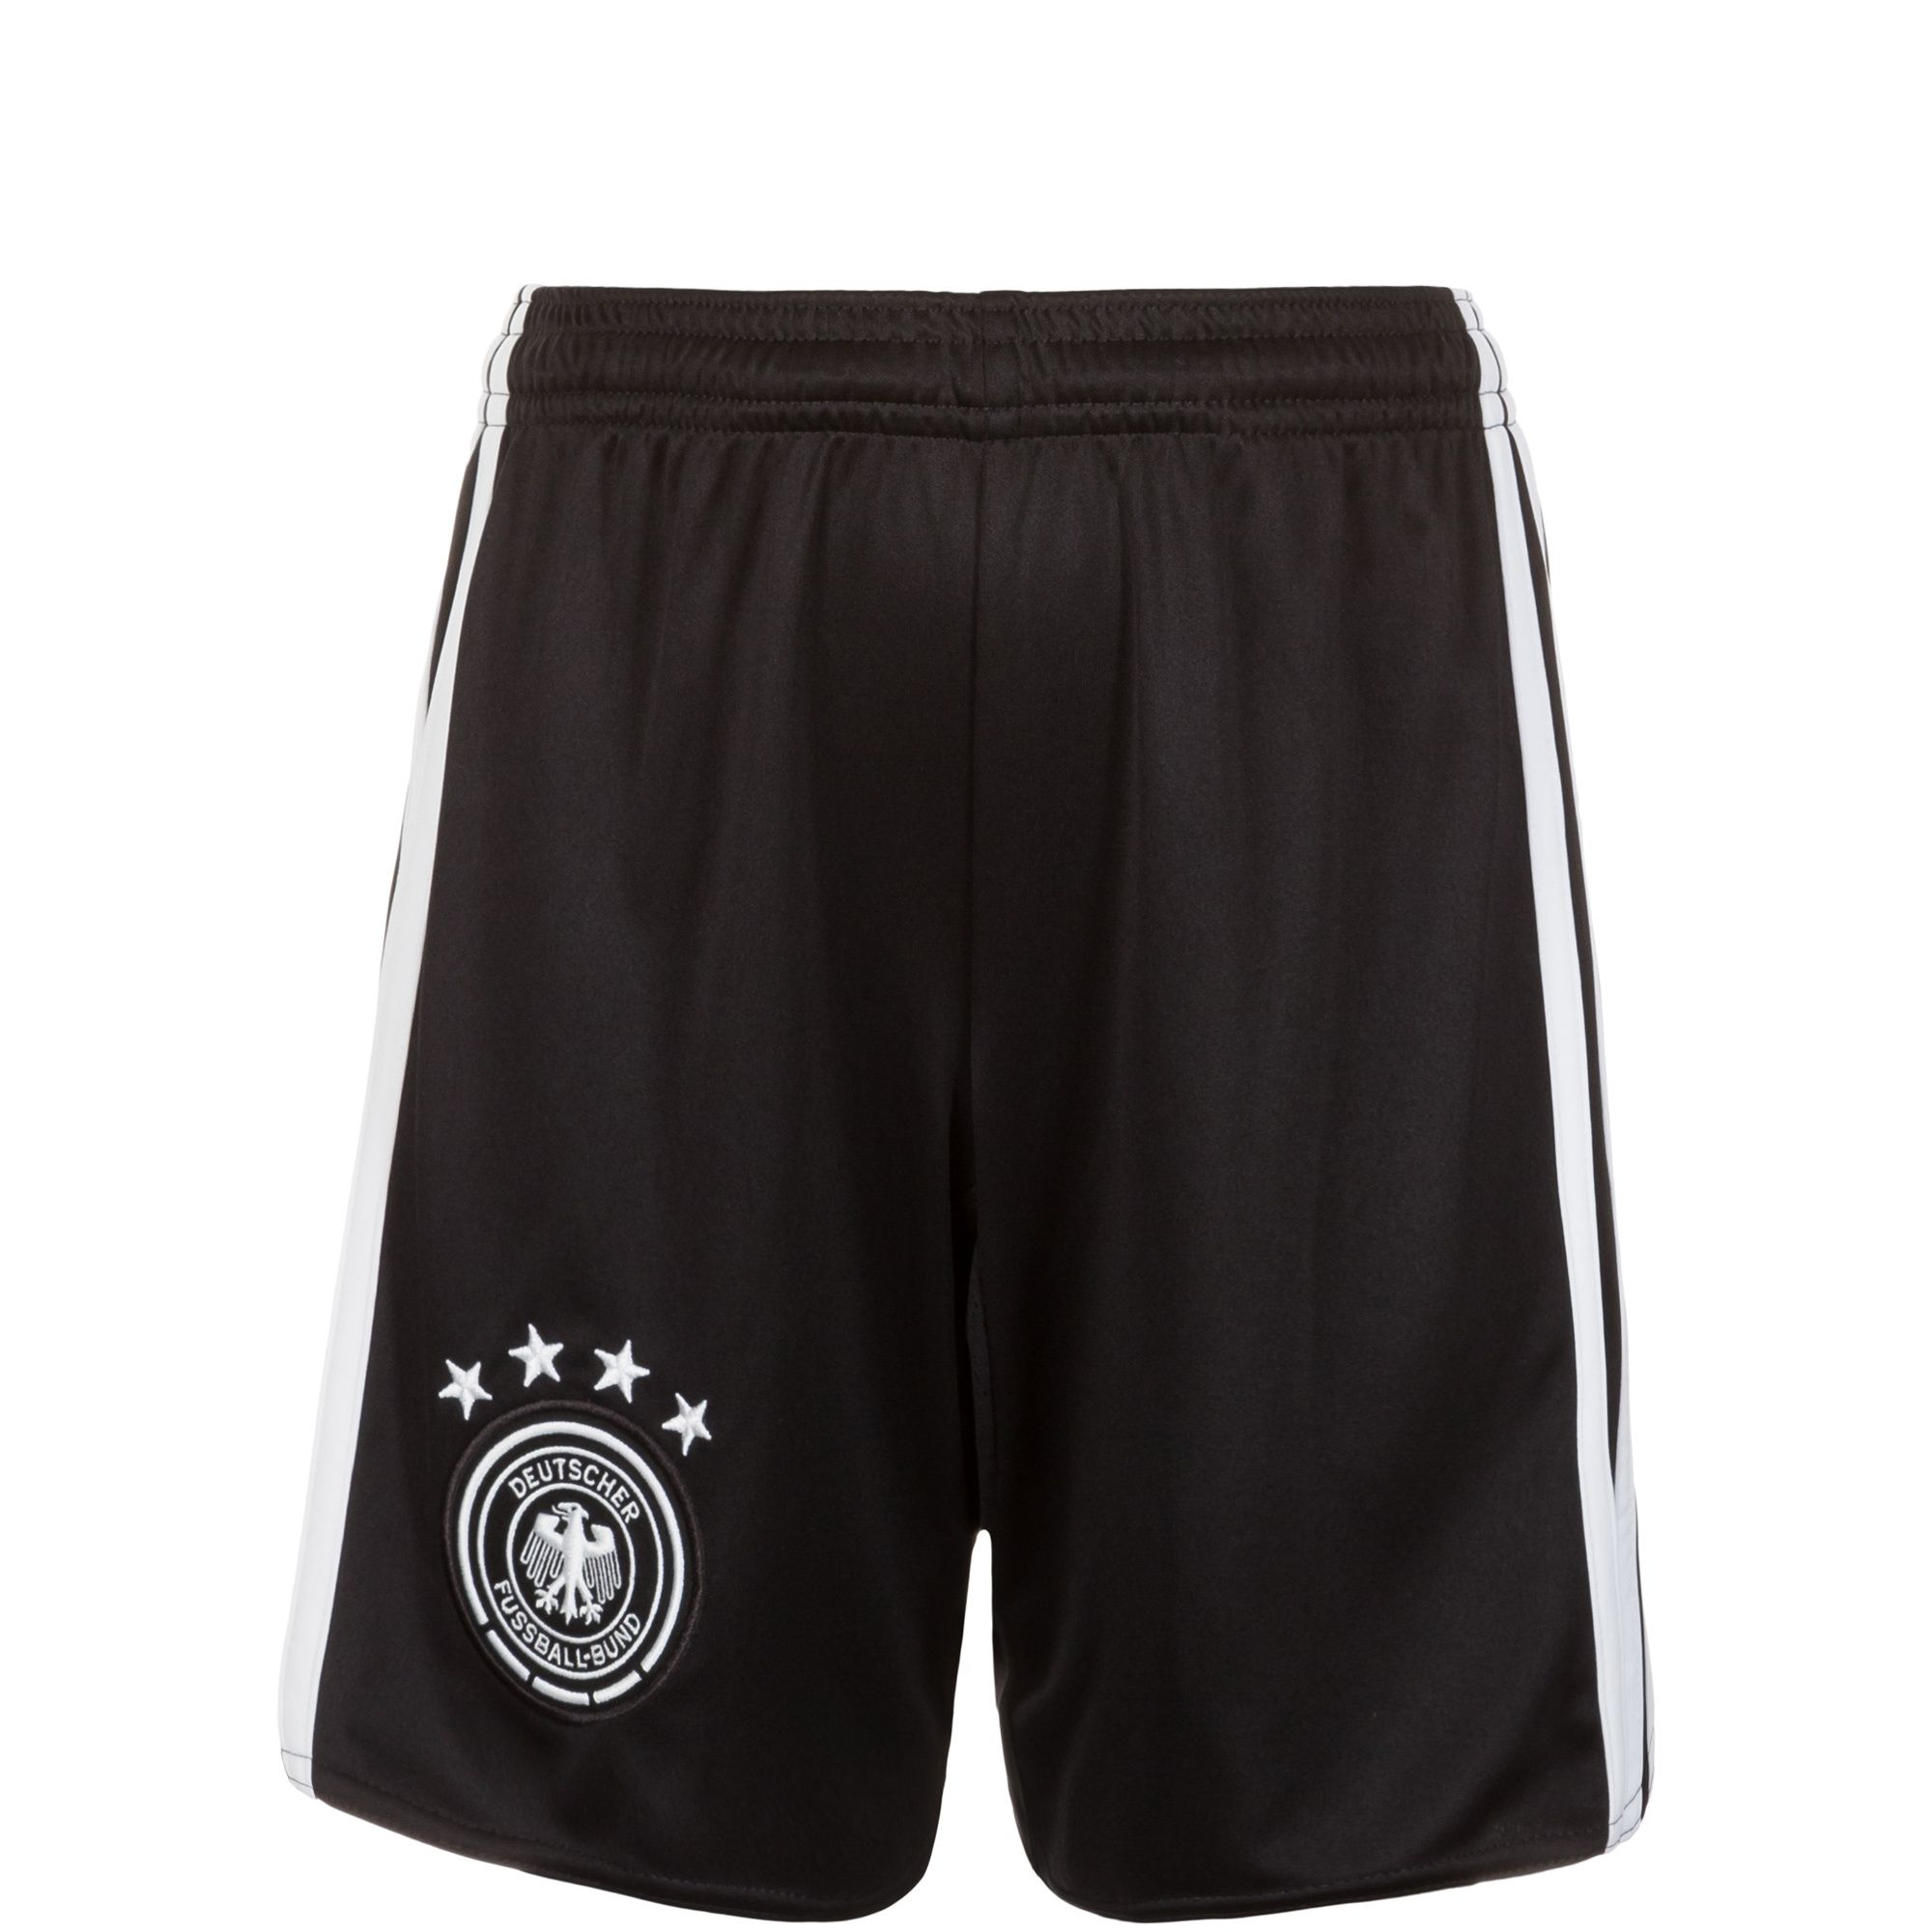 ADIDAS PERFORMANCE adidas Performance DFB Short Home EM 2016 Kinder